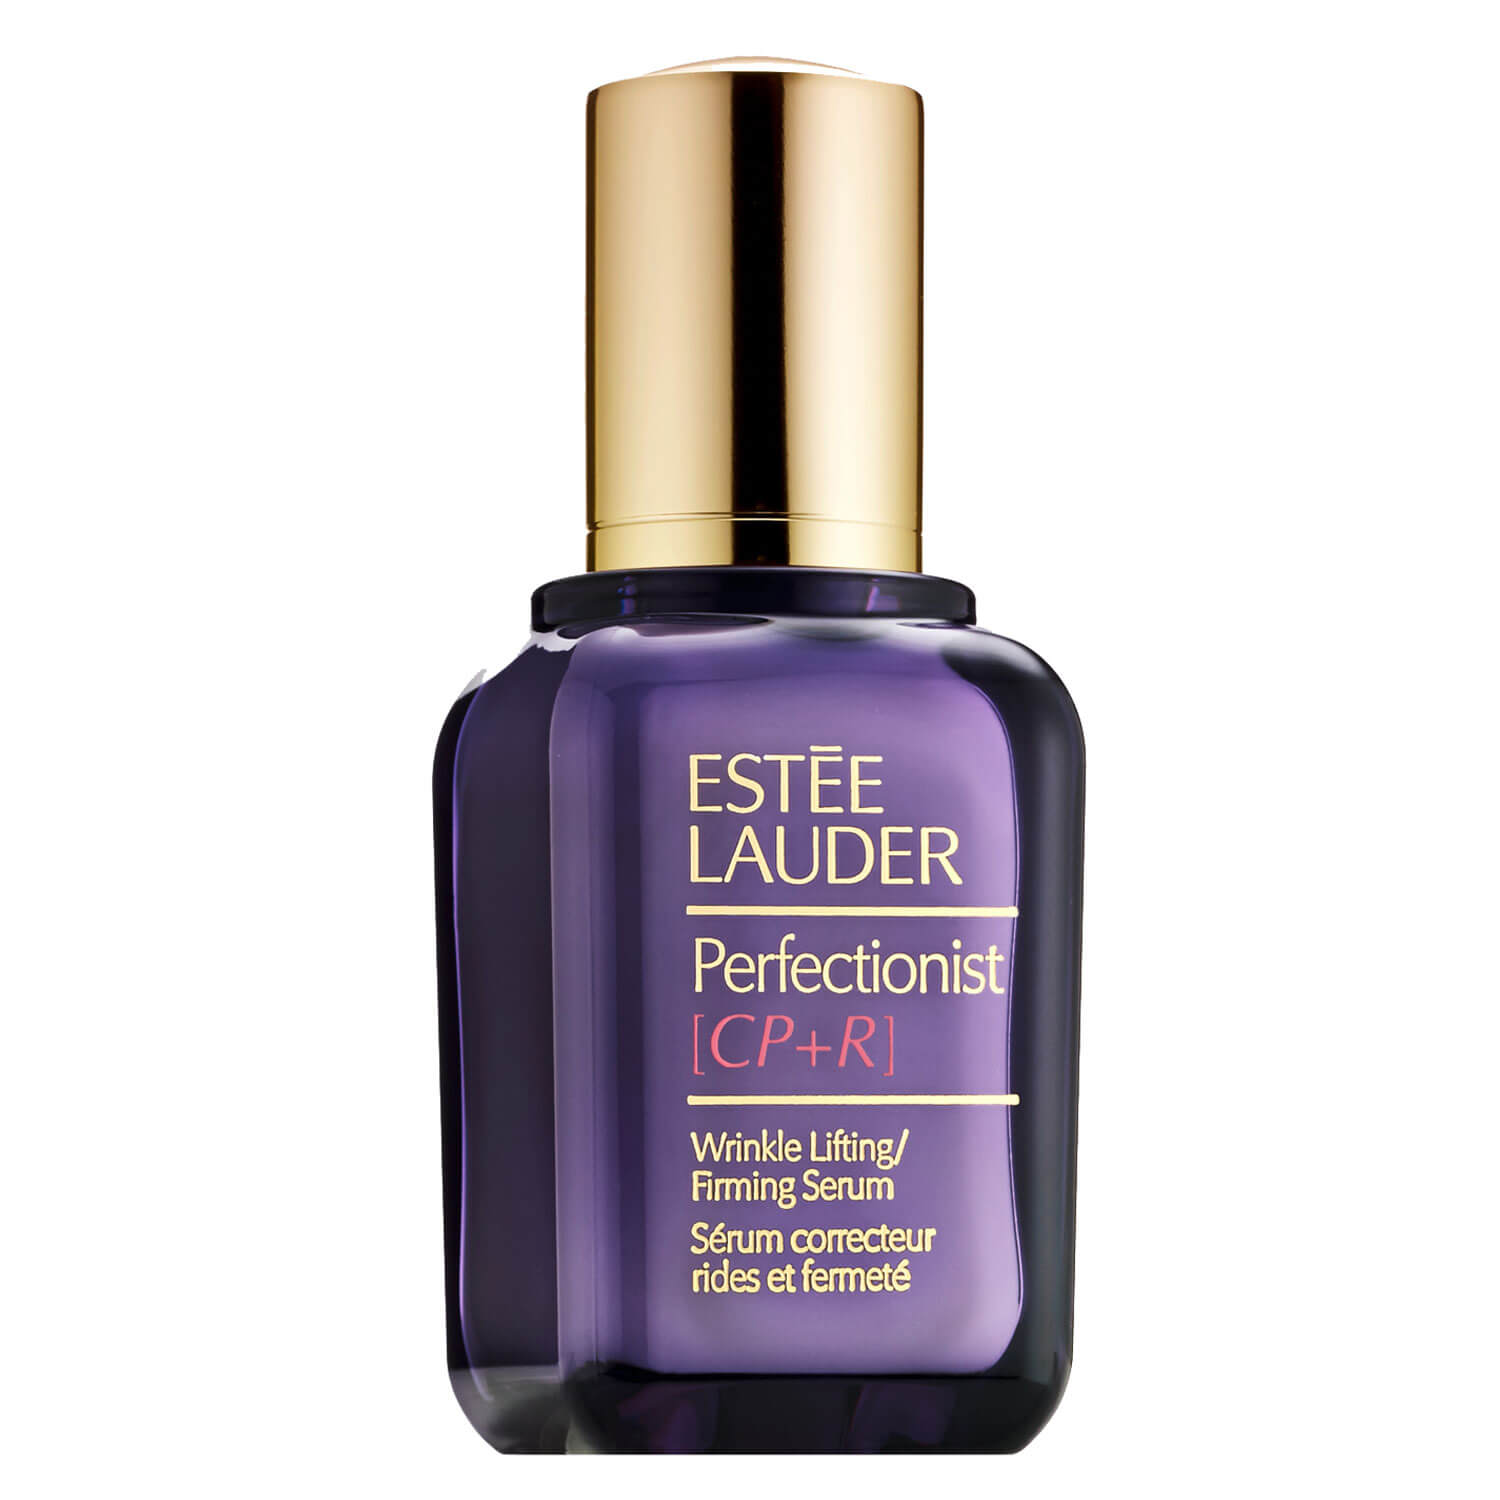 Perfectionist - [CP+R] Wrinkle Lifting/Firming Serum